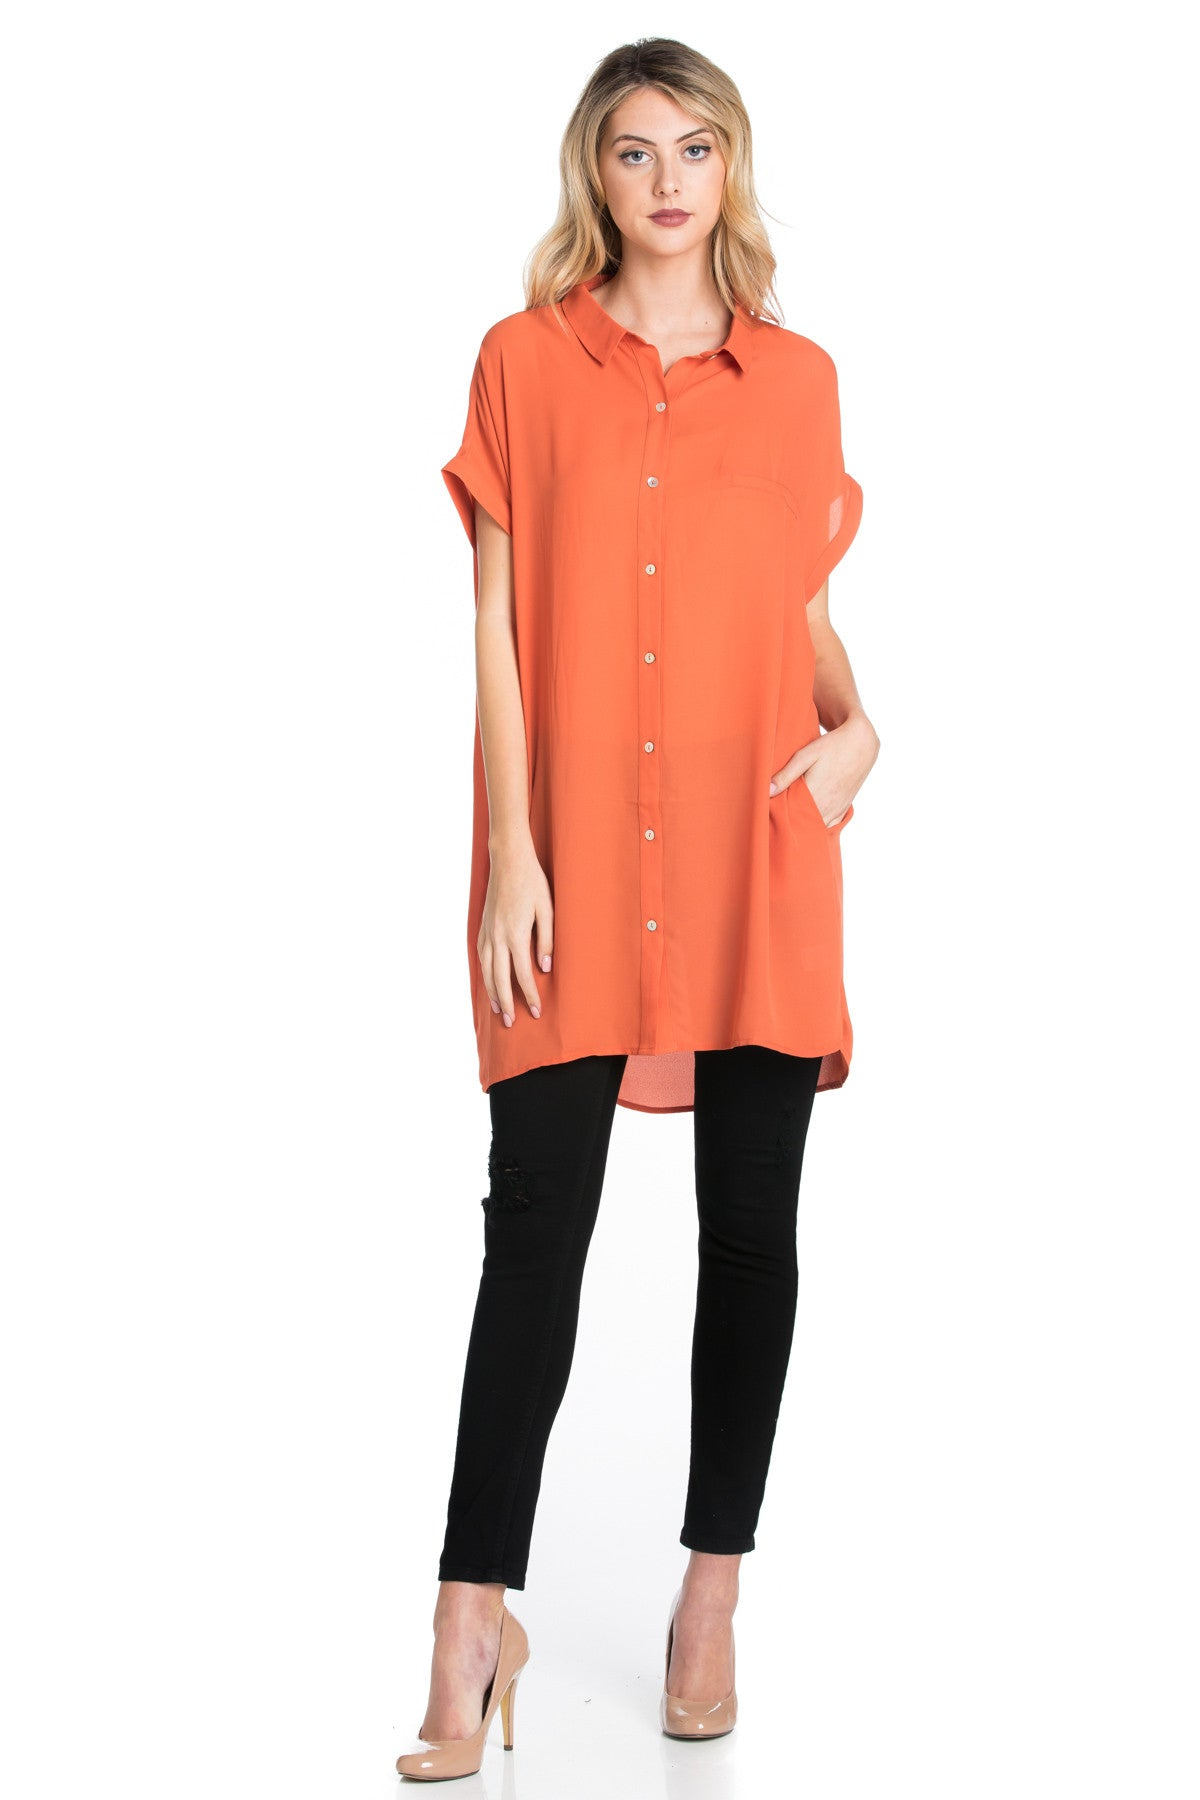 Short Sleeve Longline Button Down Chiffon Top in Peachy - Tops - My Yuccie - 13